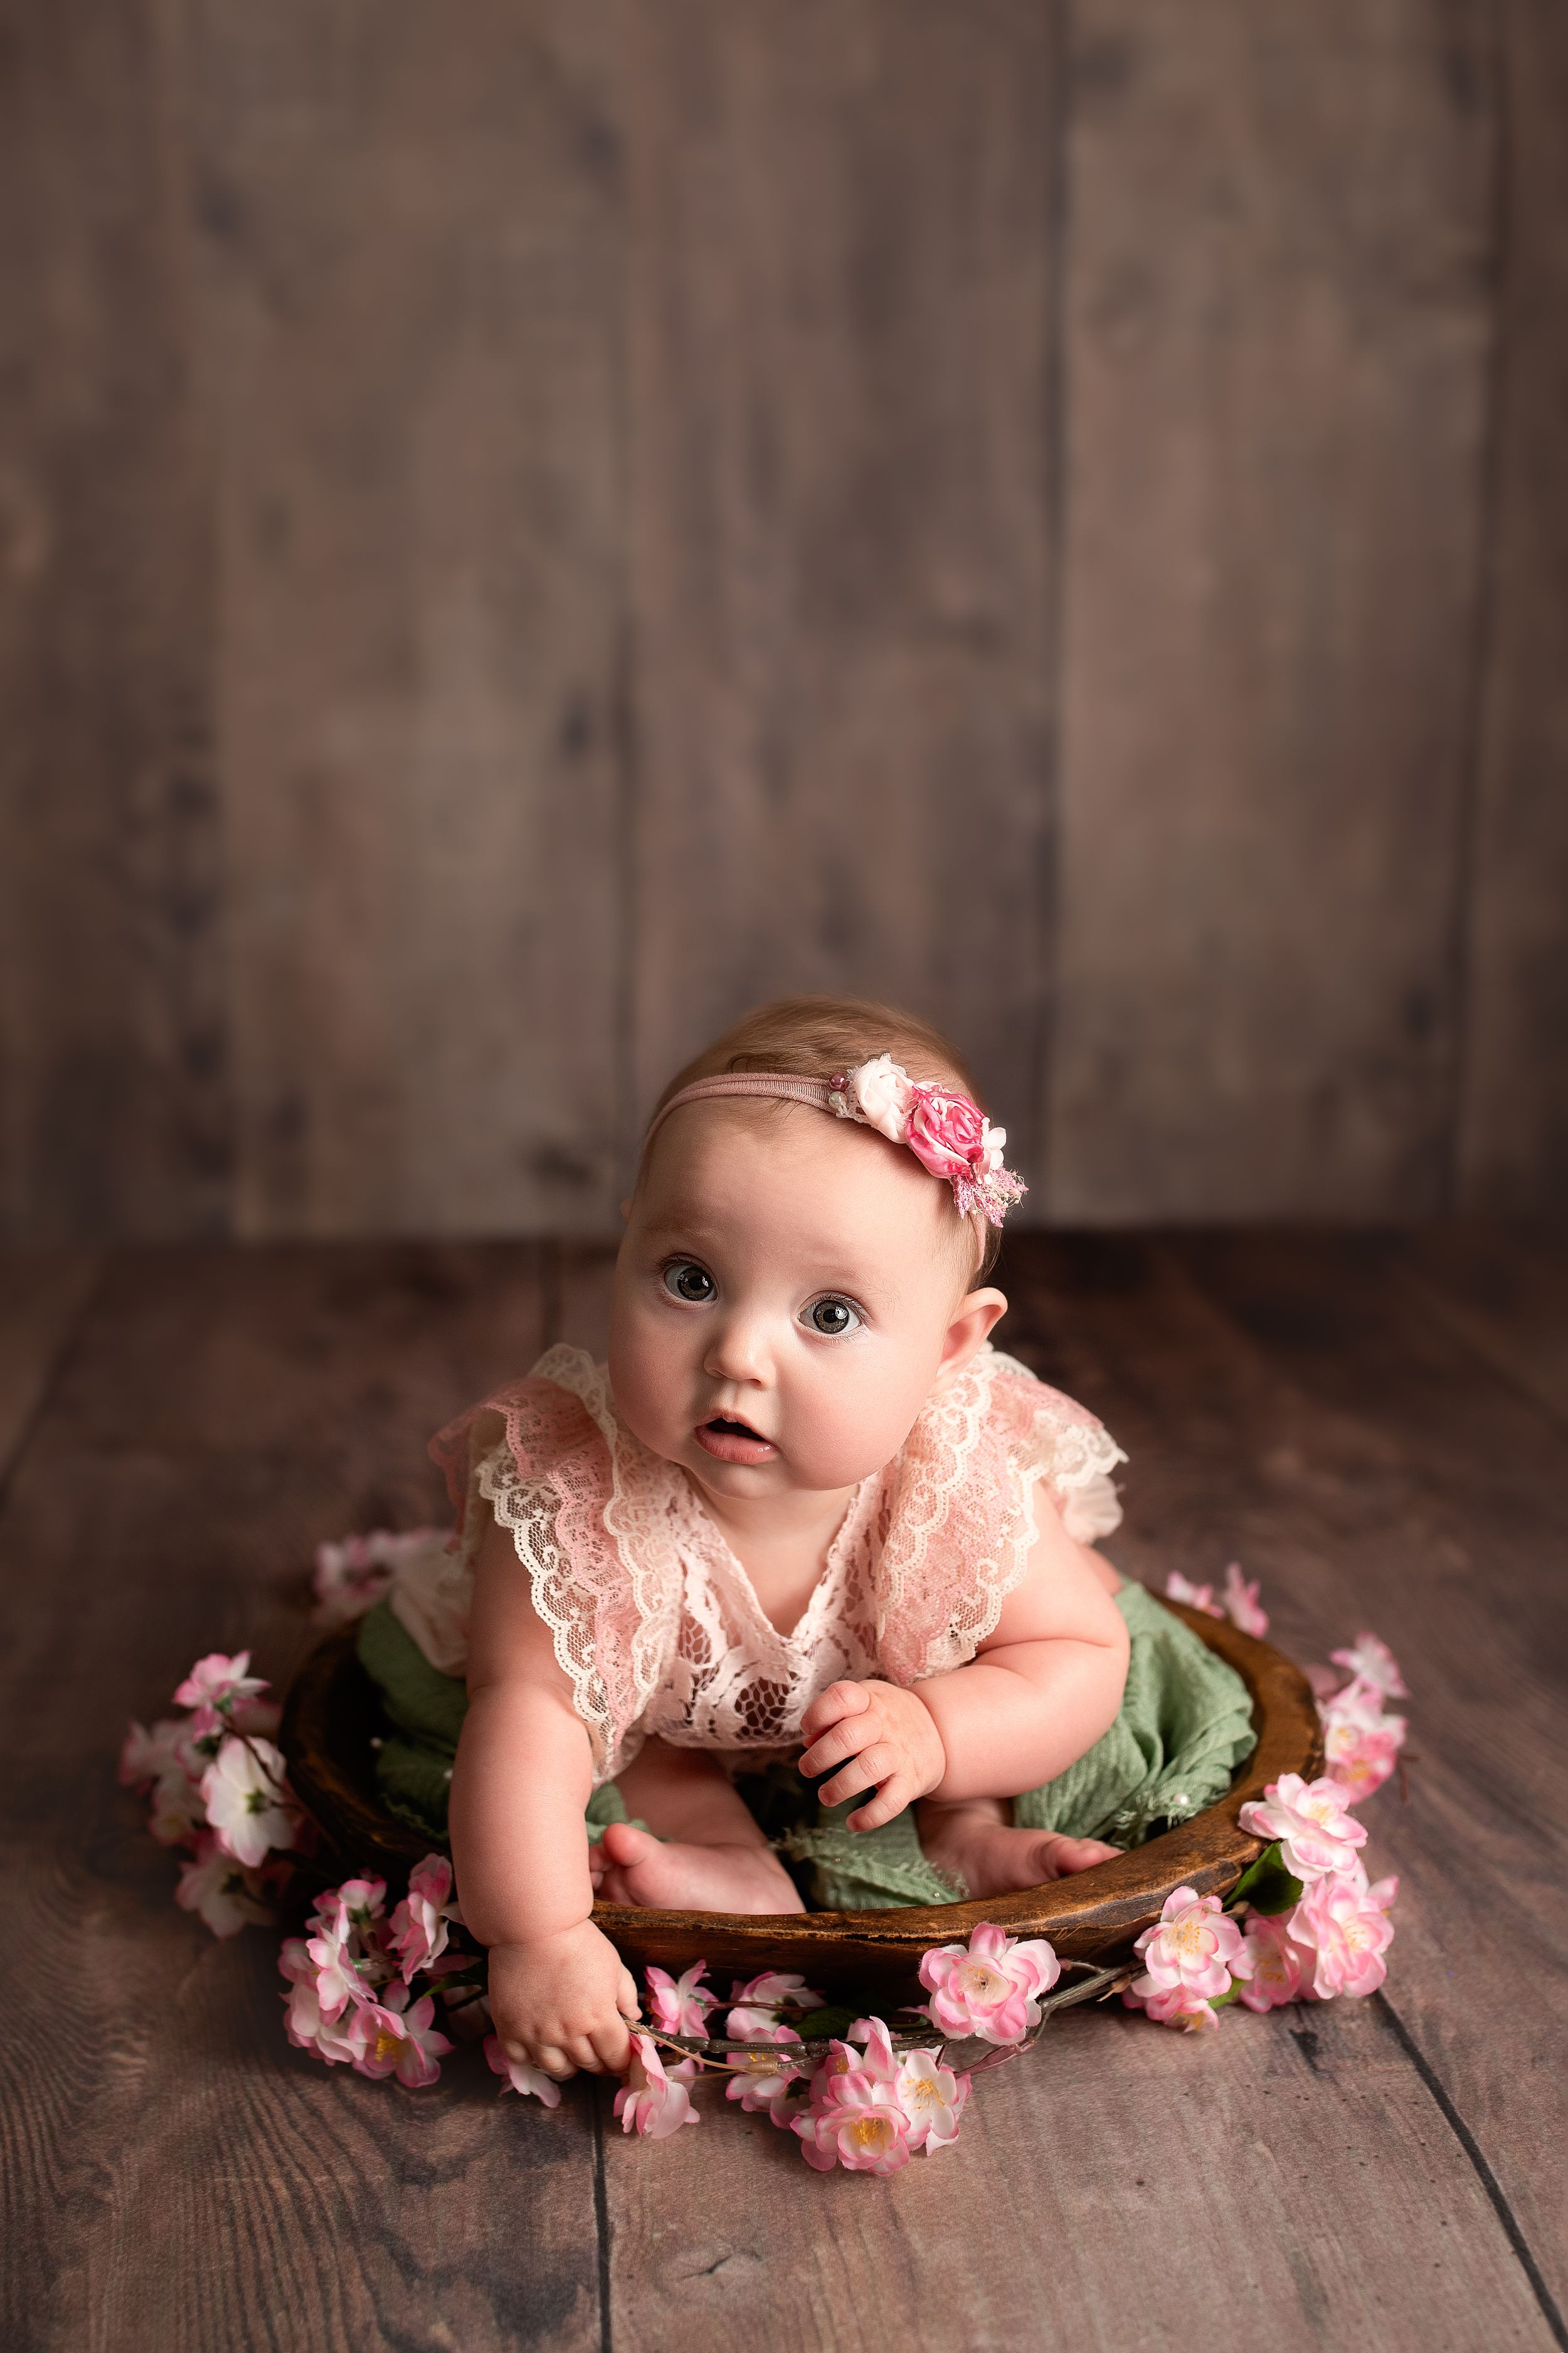 6 month old studio baby girl